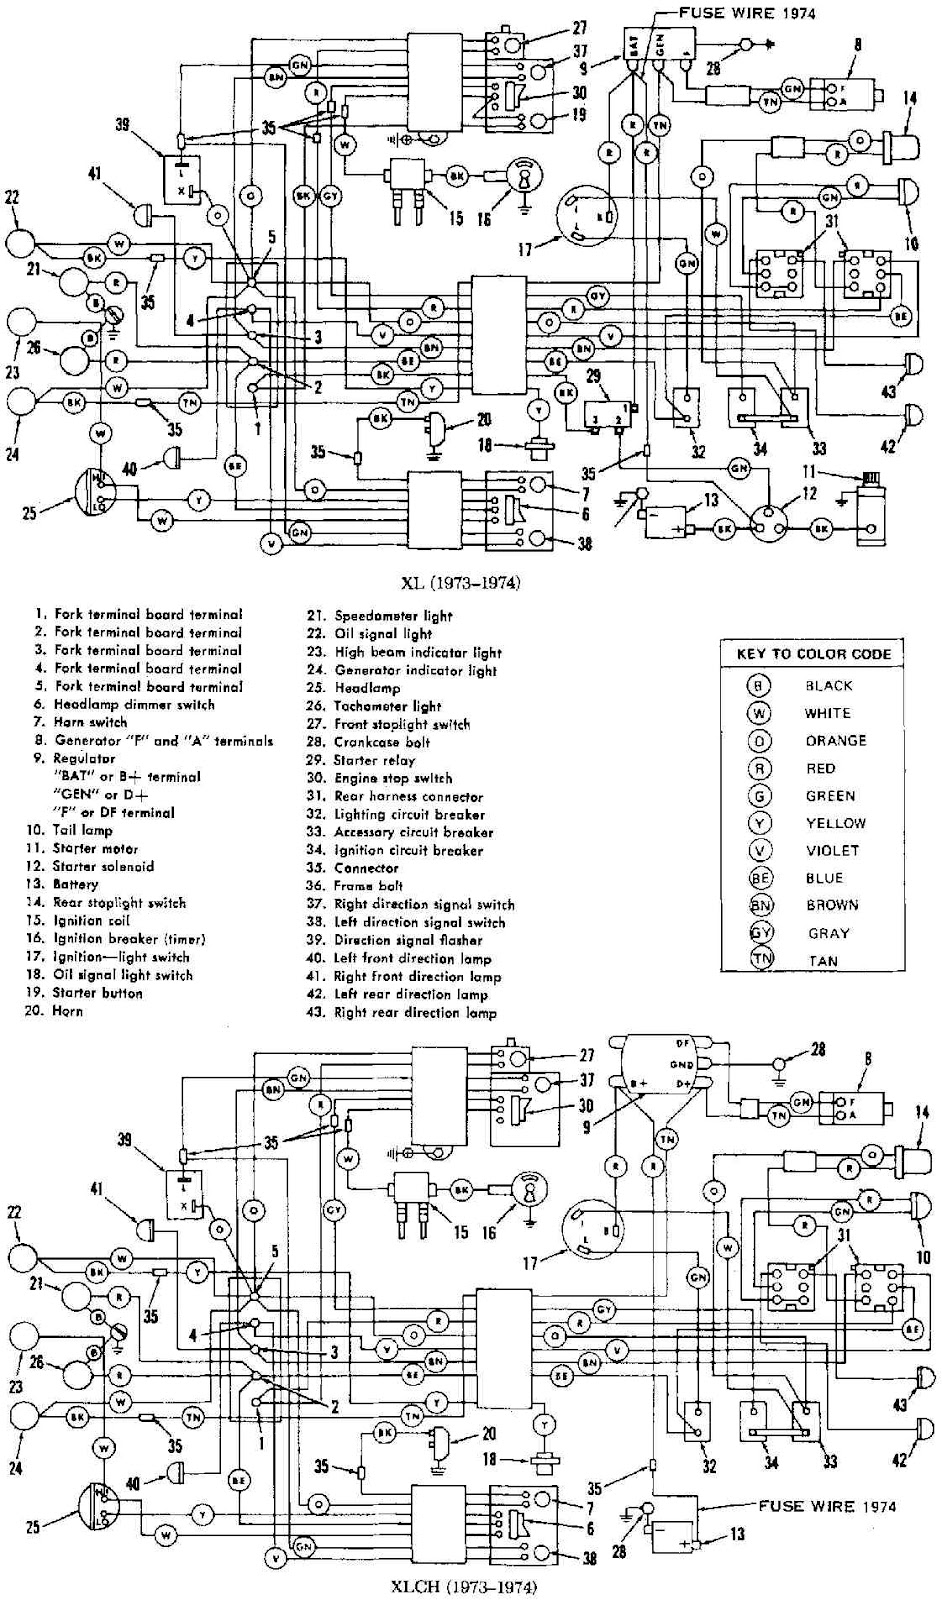 1974 ironhead wiring diagram images gallery harley davidson xl xlch 1973 1974 motorcycle electrical [ 942 x 1600 Pixel ]